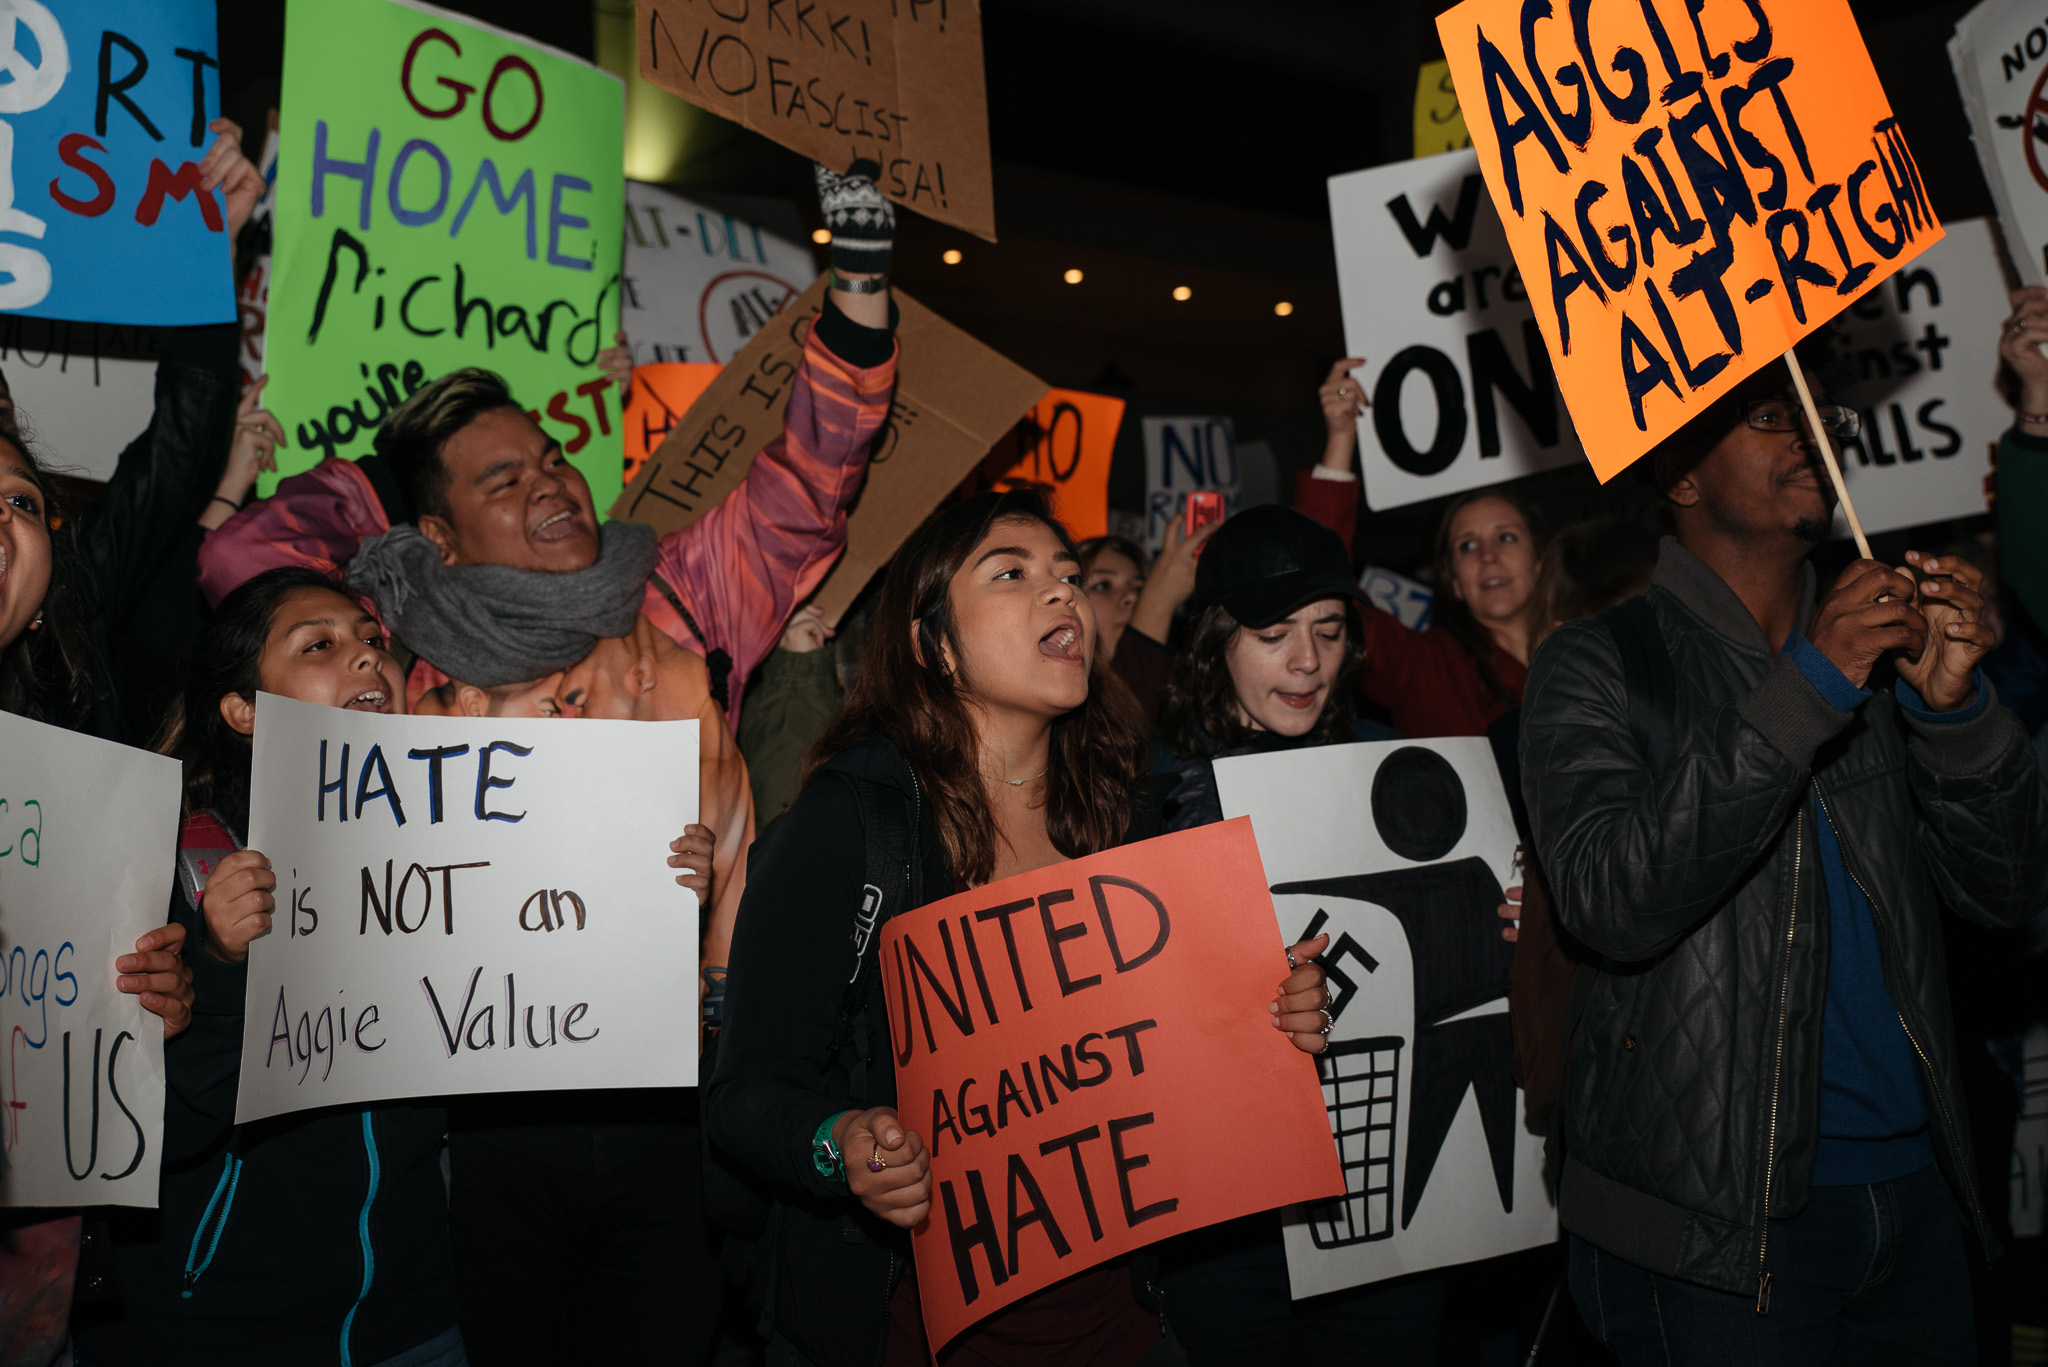 Texas A&M University students attending an on-campus protest on December 6, 2016.Photo by Cody Cobb, M3.